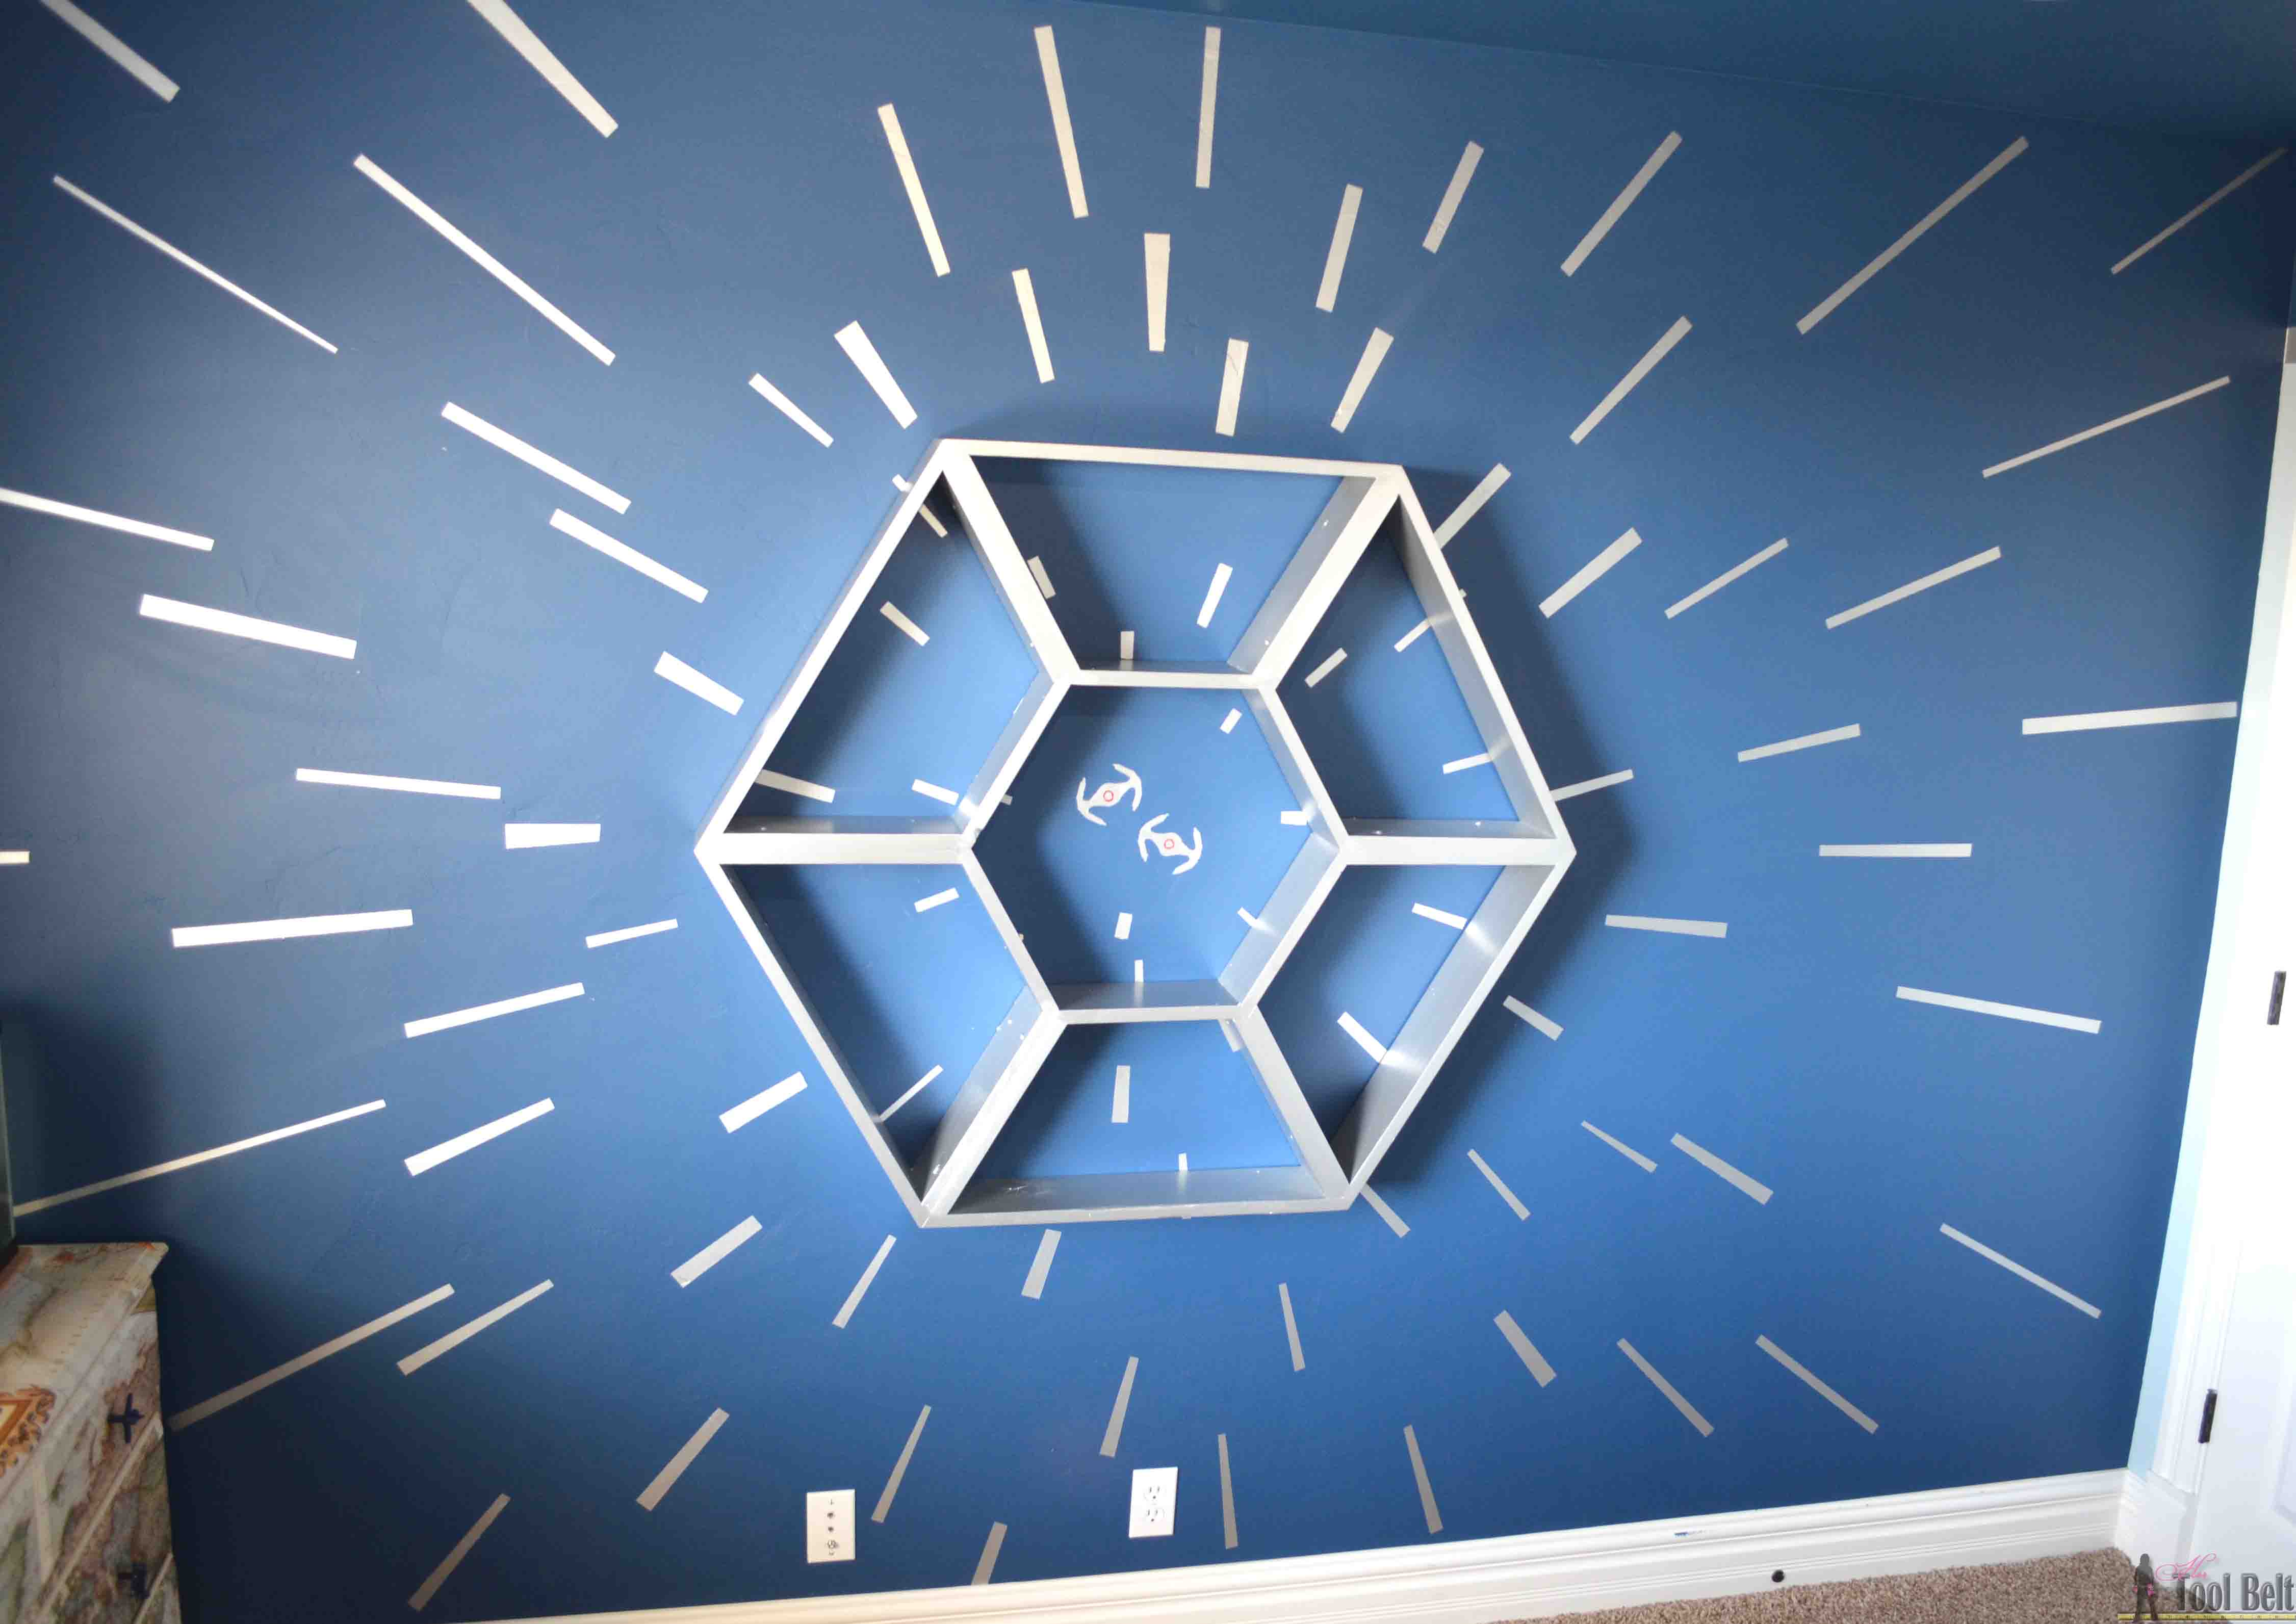 Star wars shelf and hyperspace wall her tool belt an awesome star wars bedroom with a hyperspace focal wall and fighter cockpit star wars shelf amipublicfo Choice Image